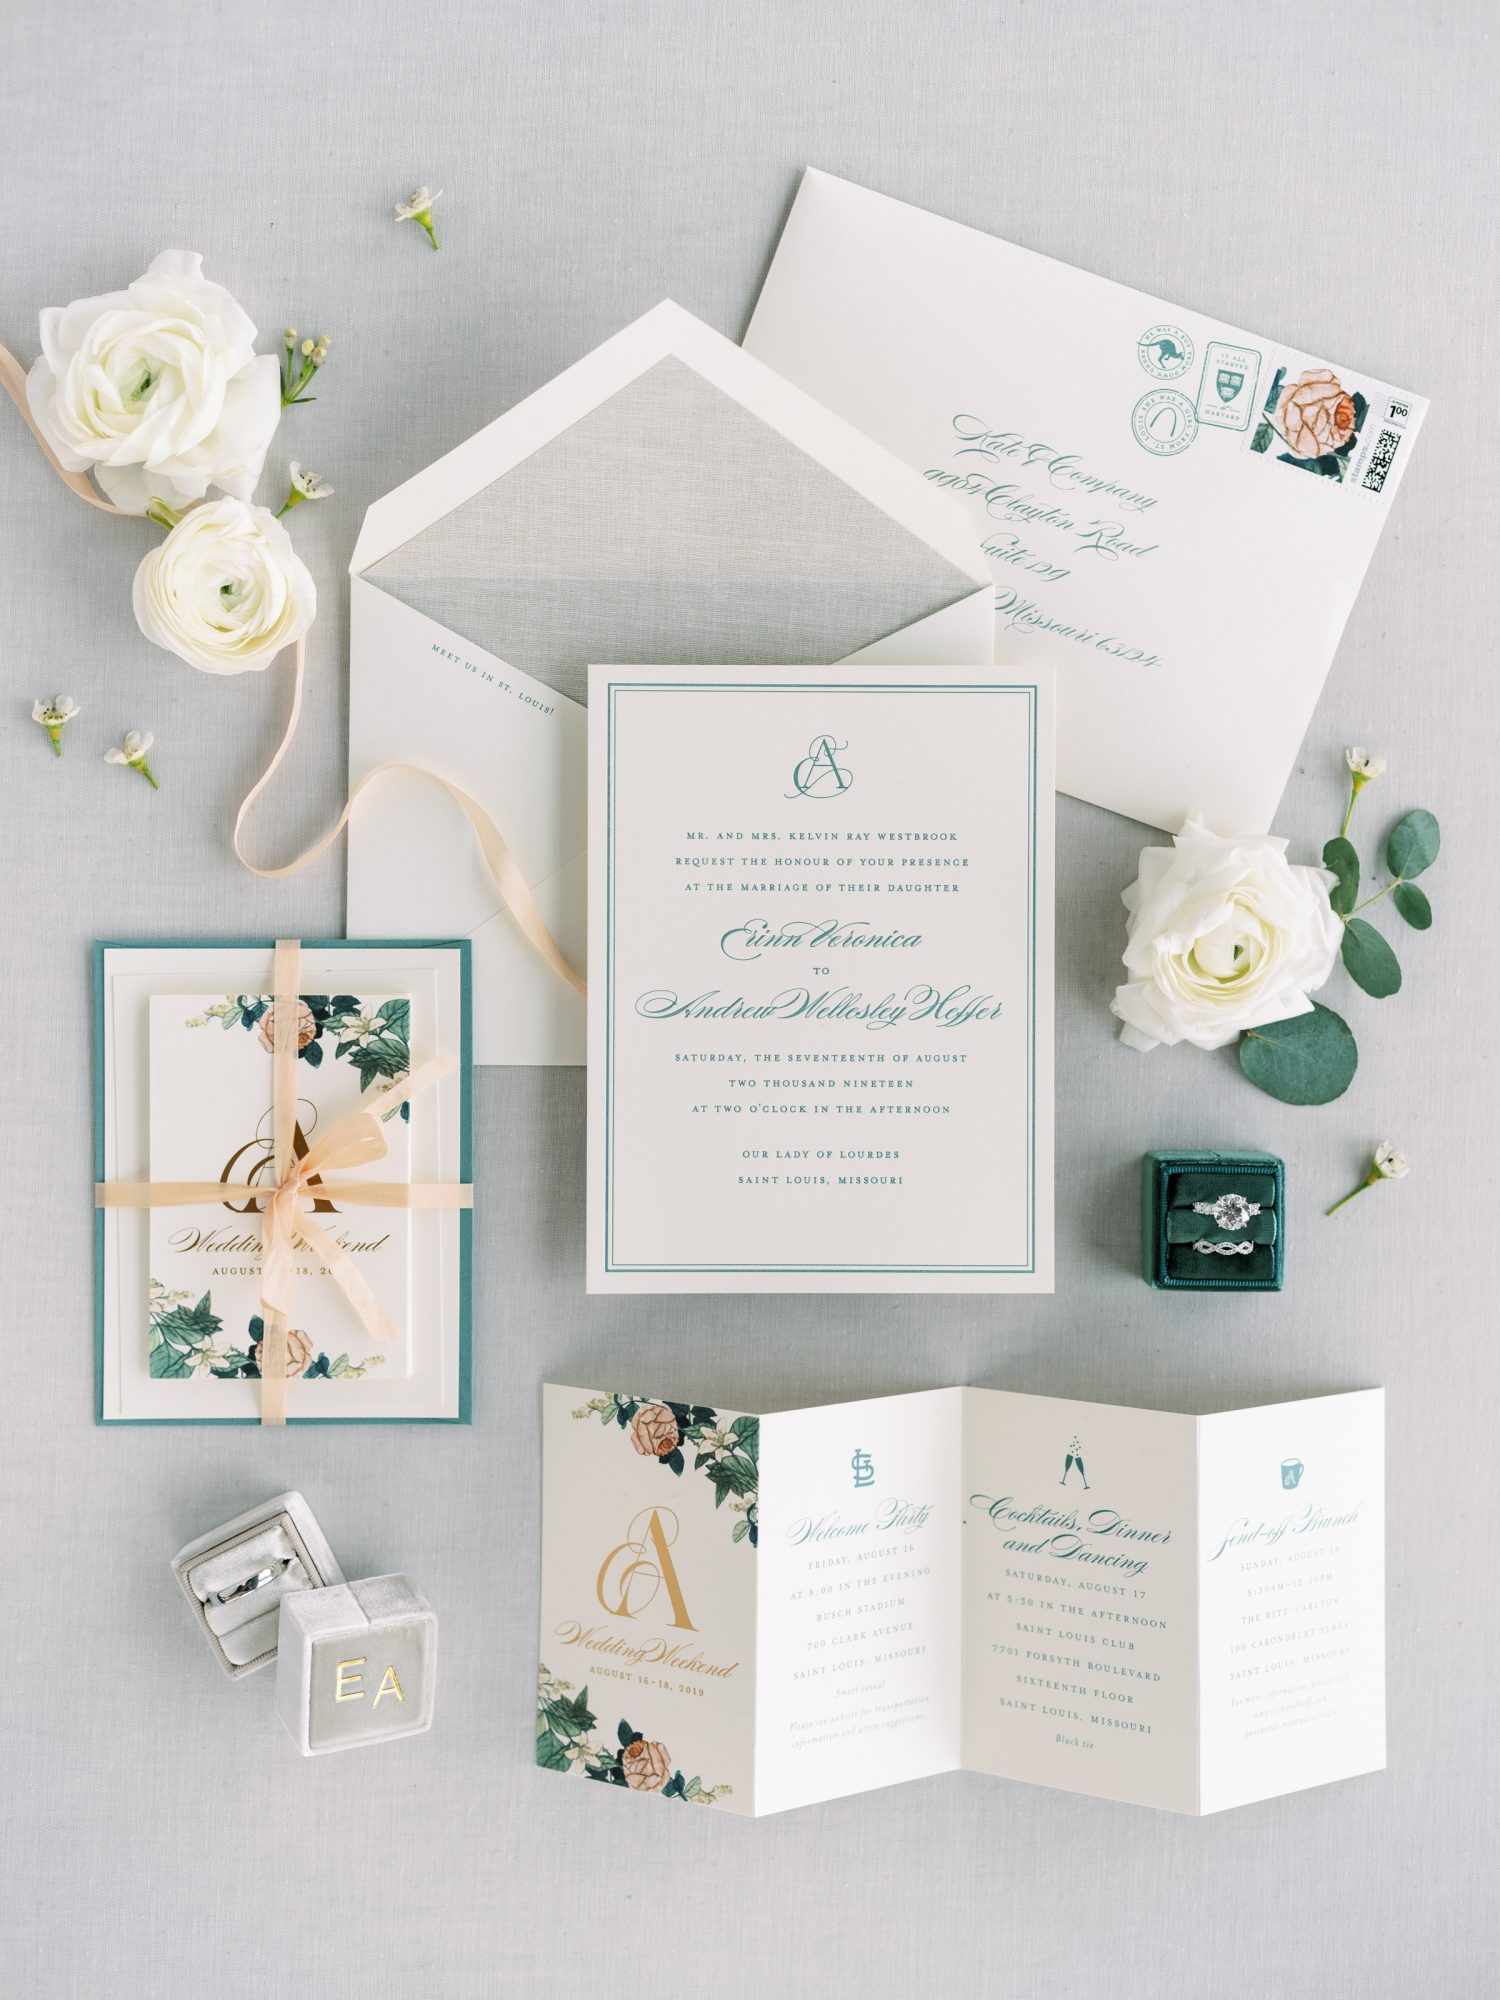 erinn andrew wedding invitation suite with pink and green floral decor